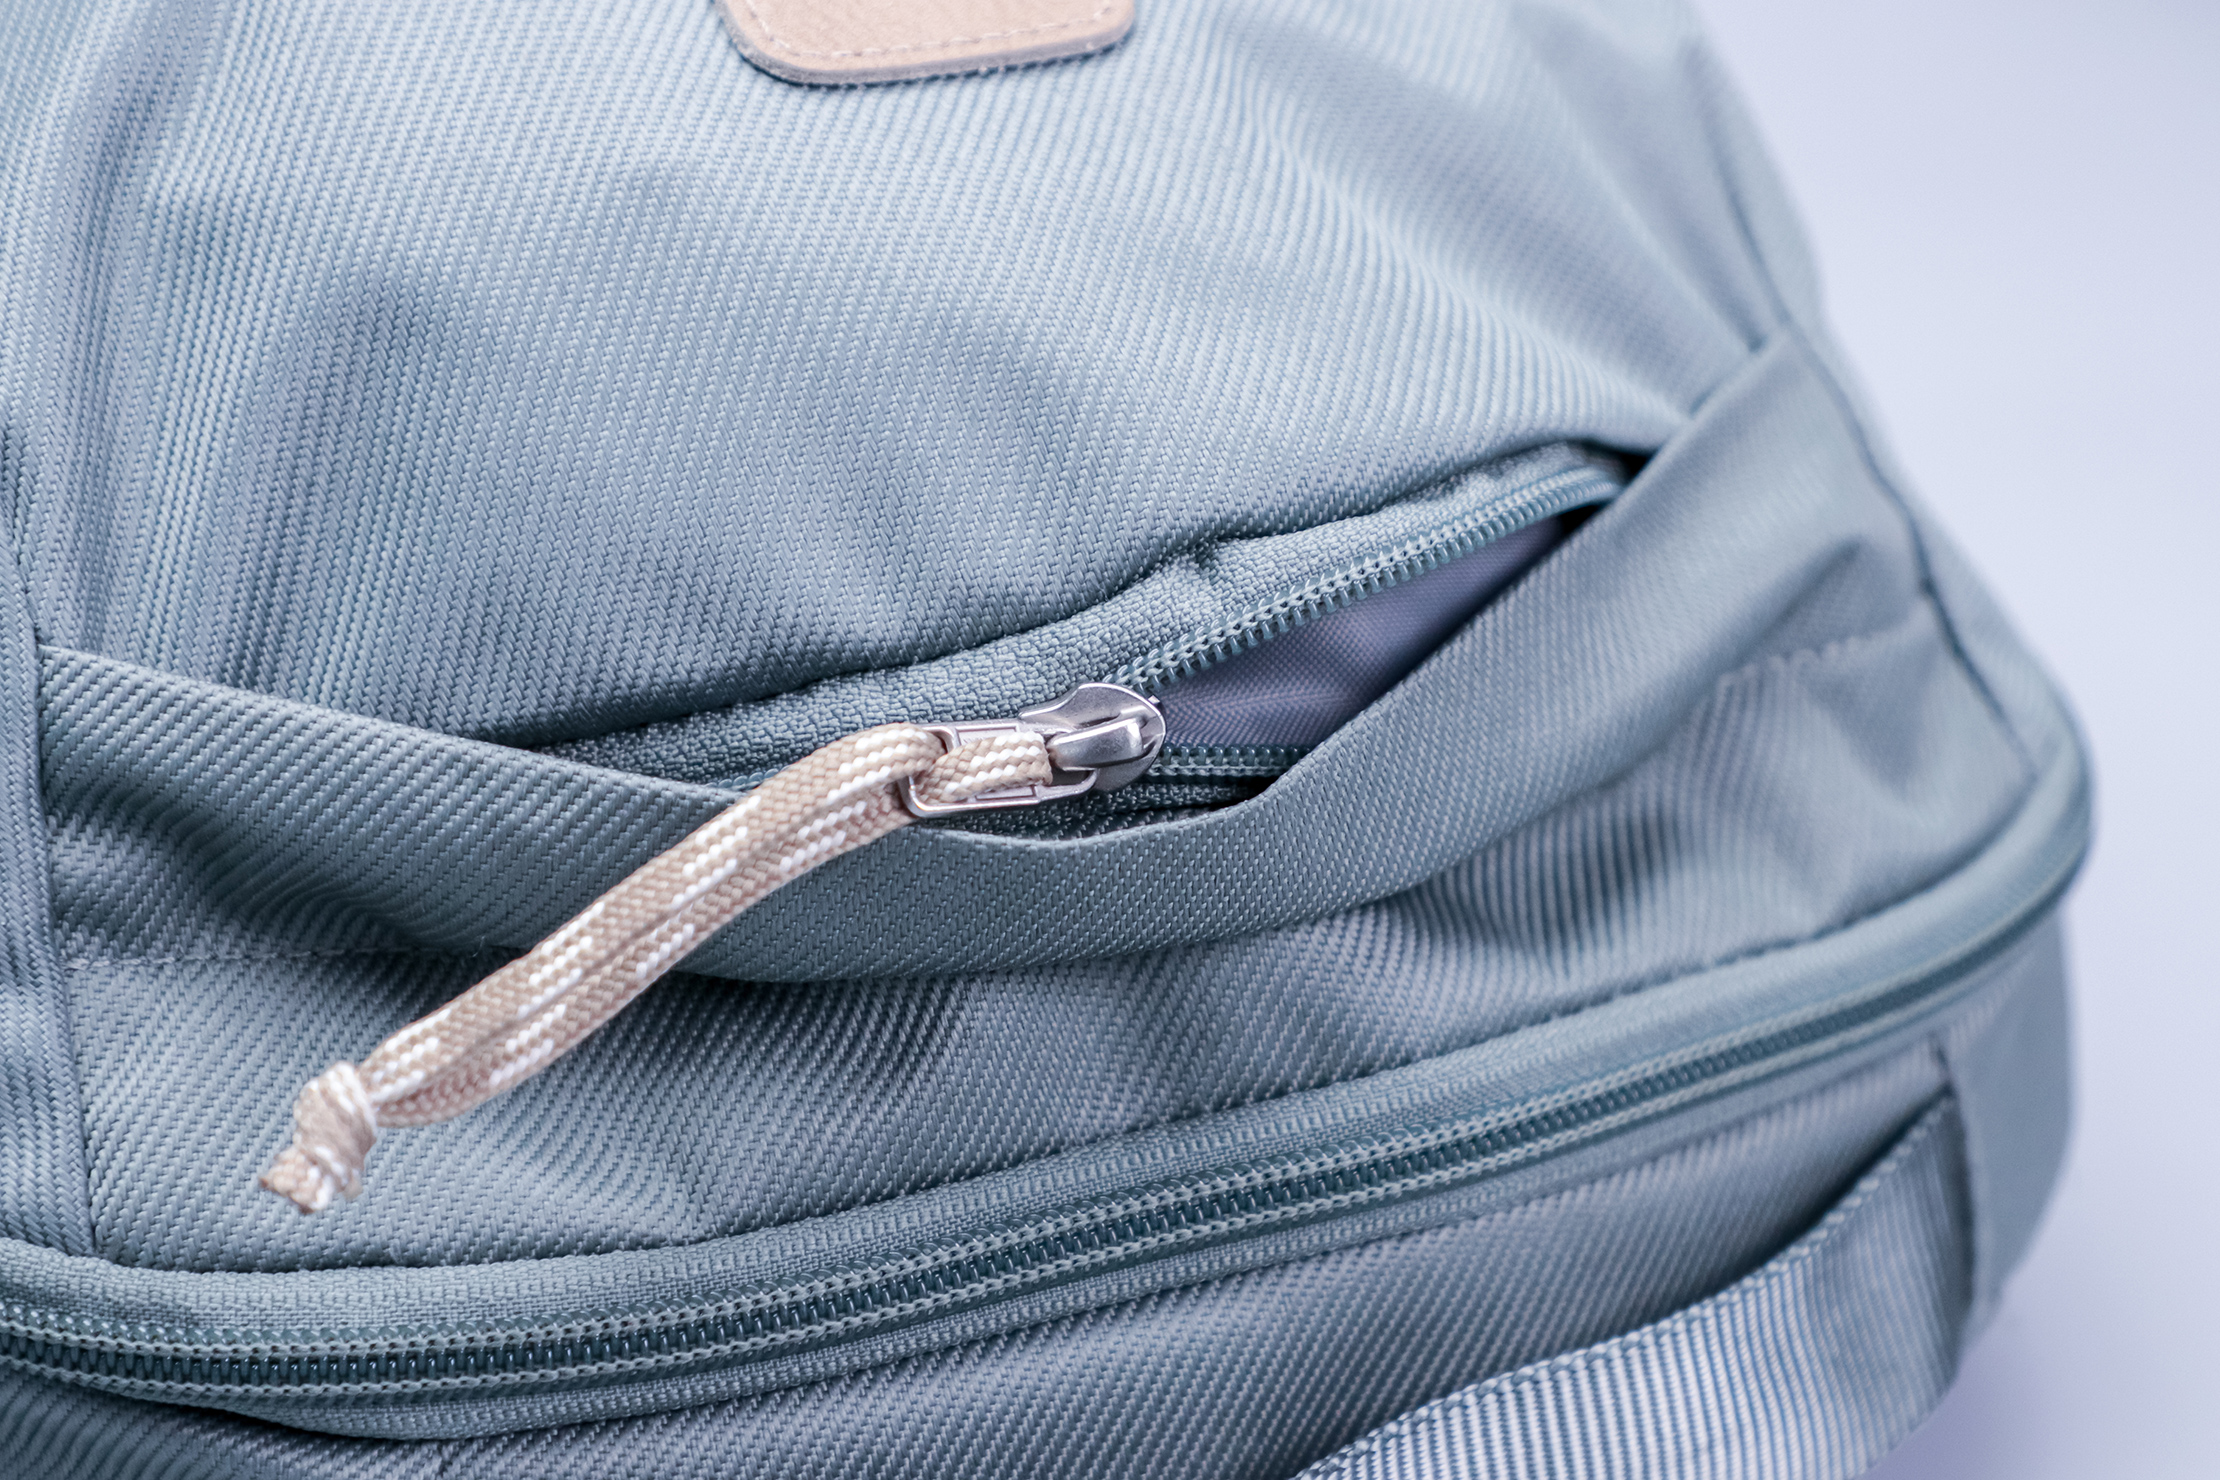 The North Face Daypack hidden top pocket